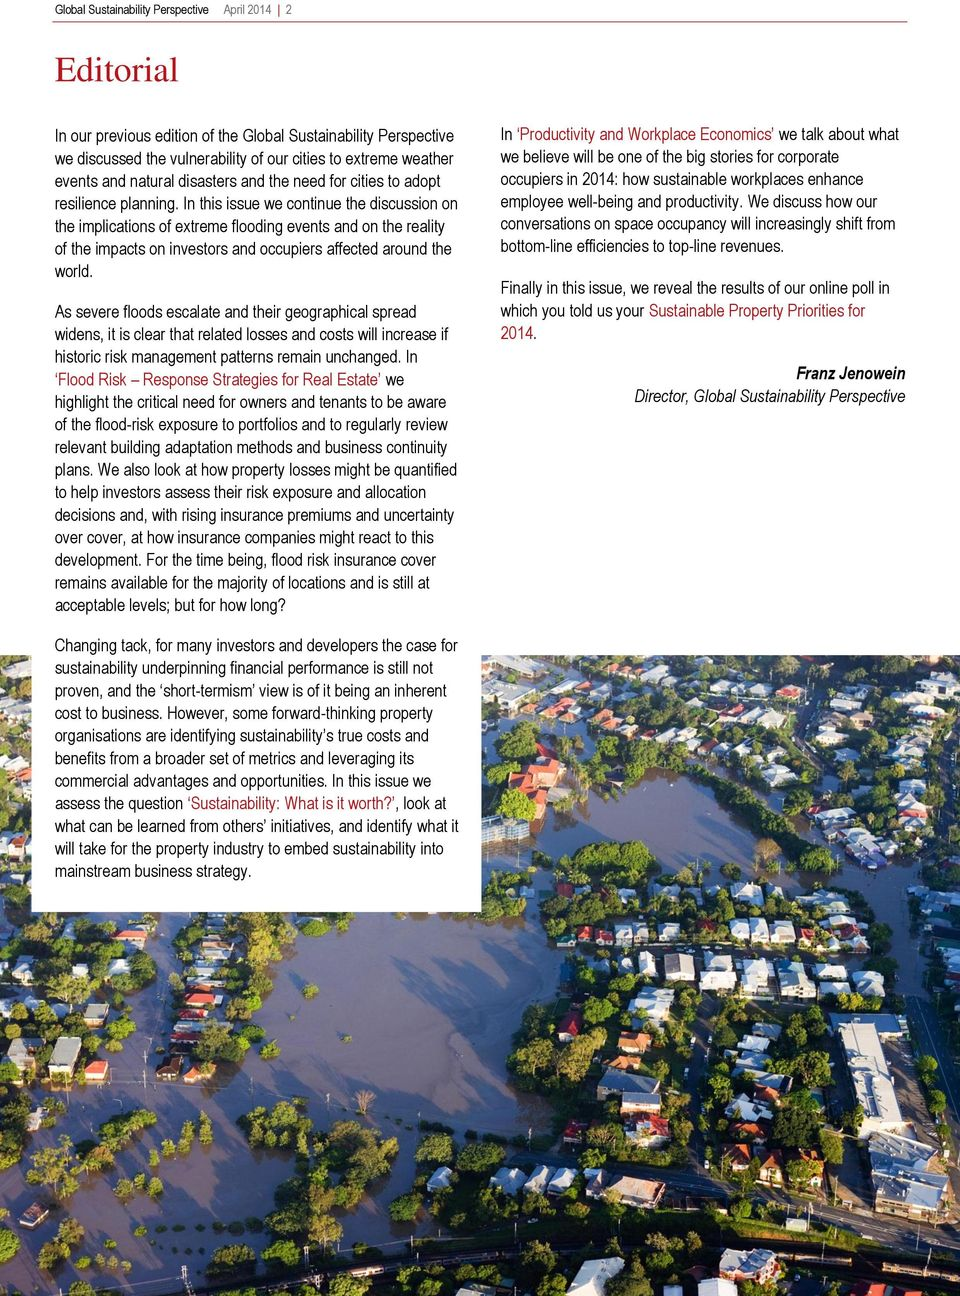 In this issue we continue the discussion on the implications of extreme flooding events and on the reality of the impacts on investors and occupiers affected around the world.